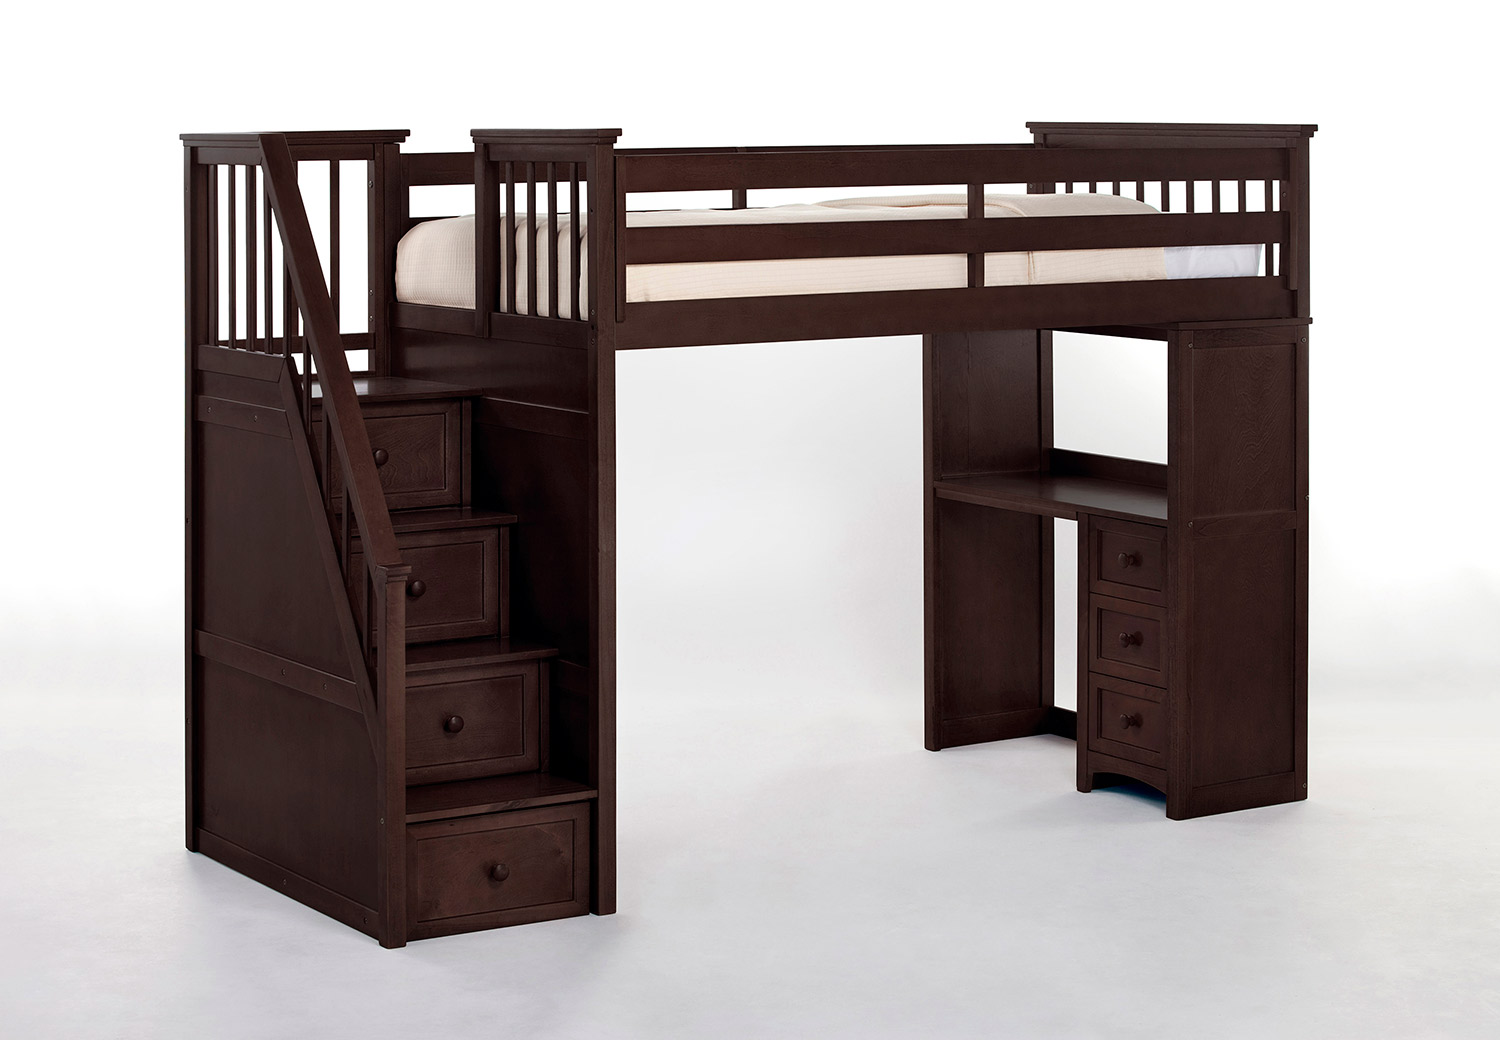 NE Kids SchoolHouse Stair Loft Bed with Desk End - Chocolate